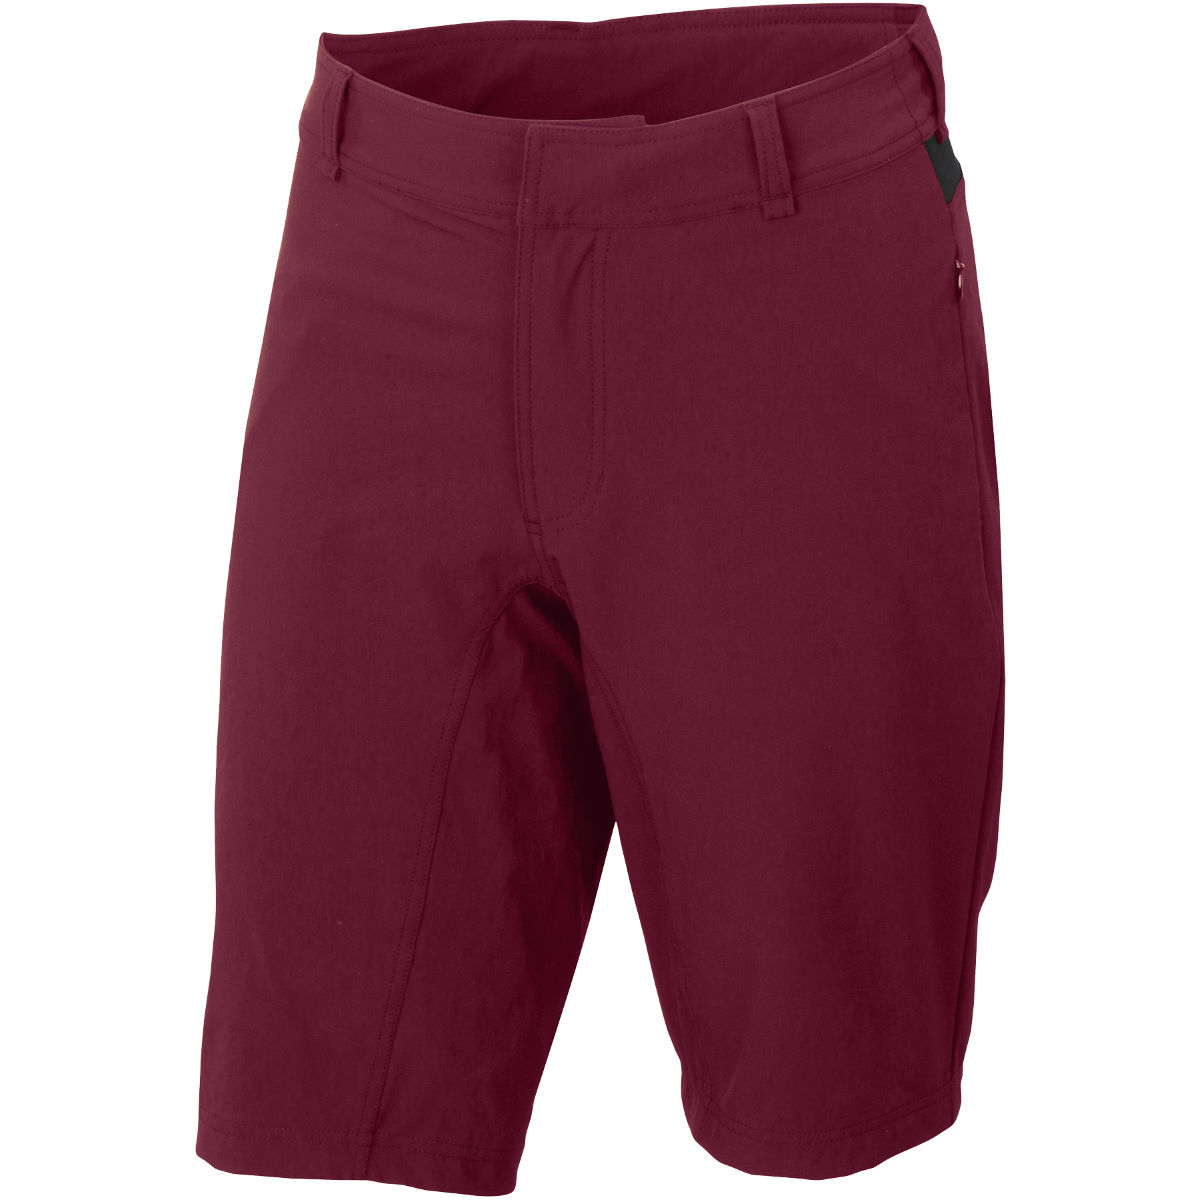 Sportful Giara Over Shorts - M Red Wine  Baggy Shorts